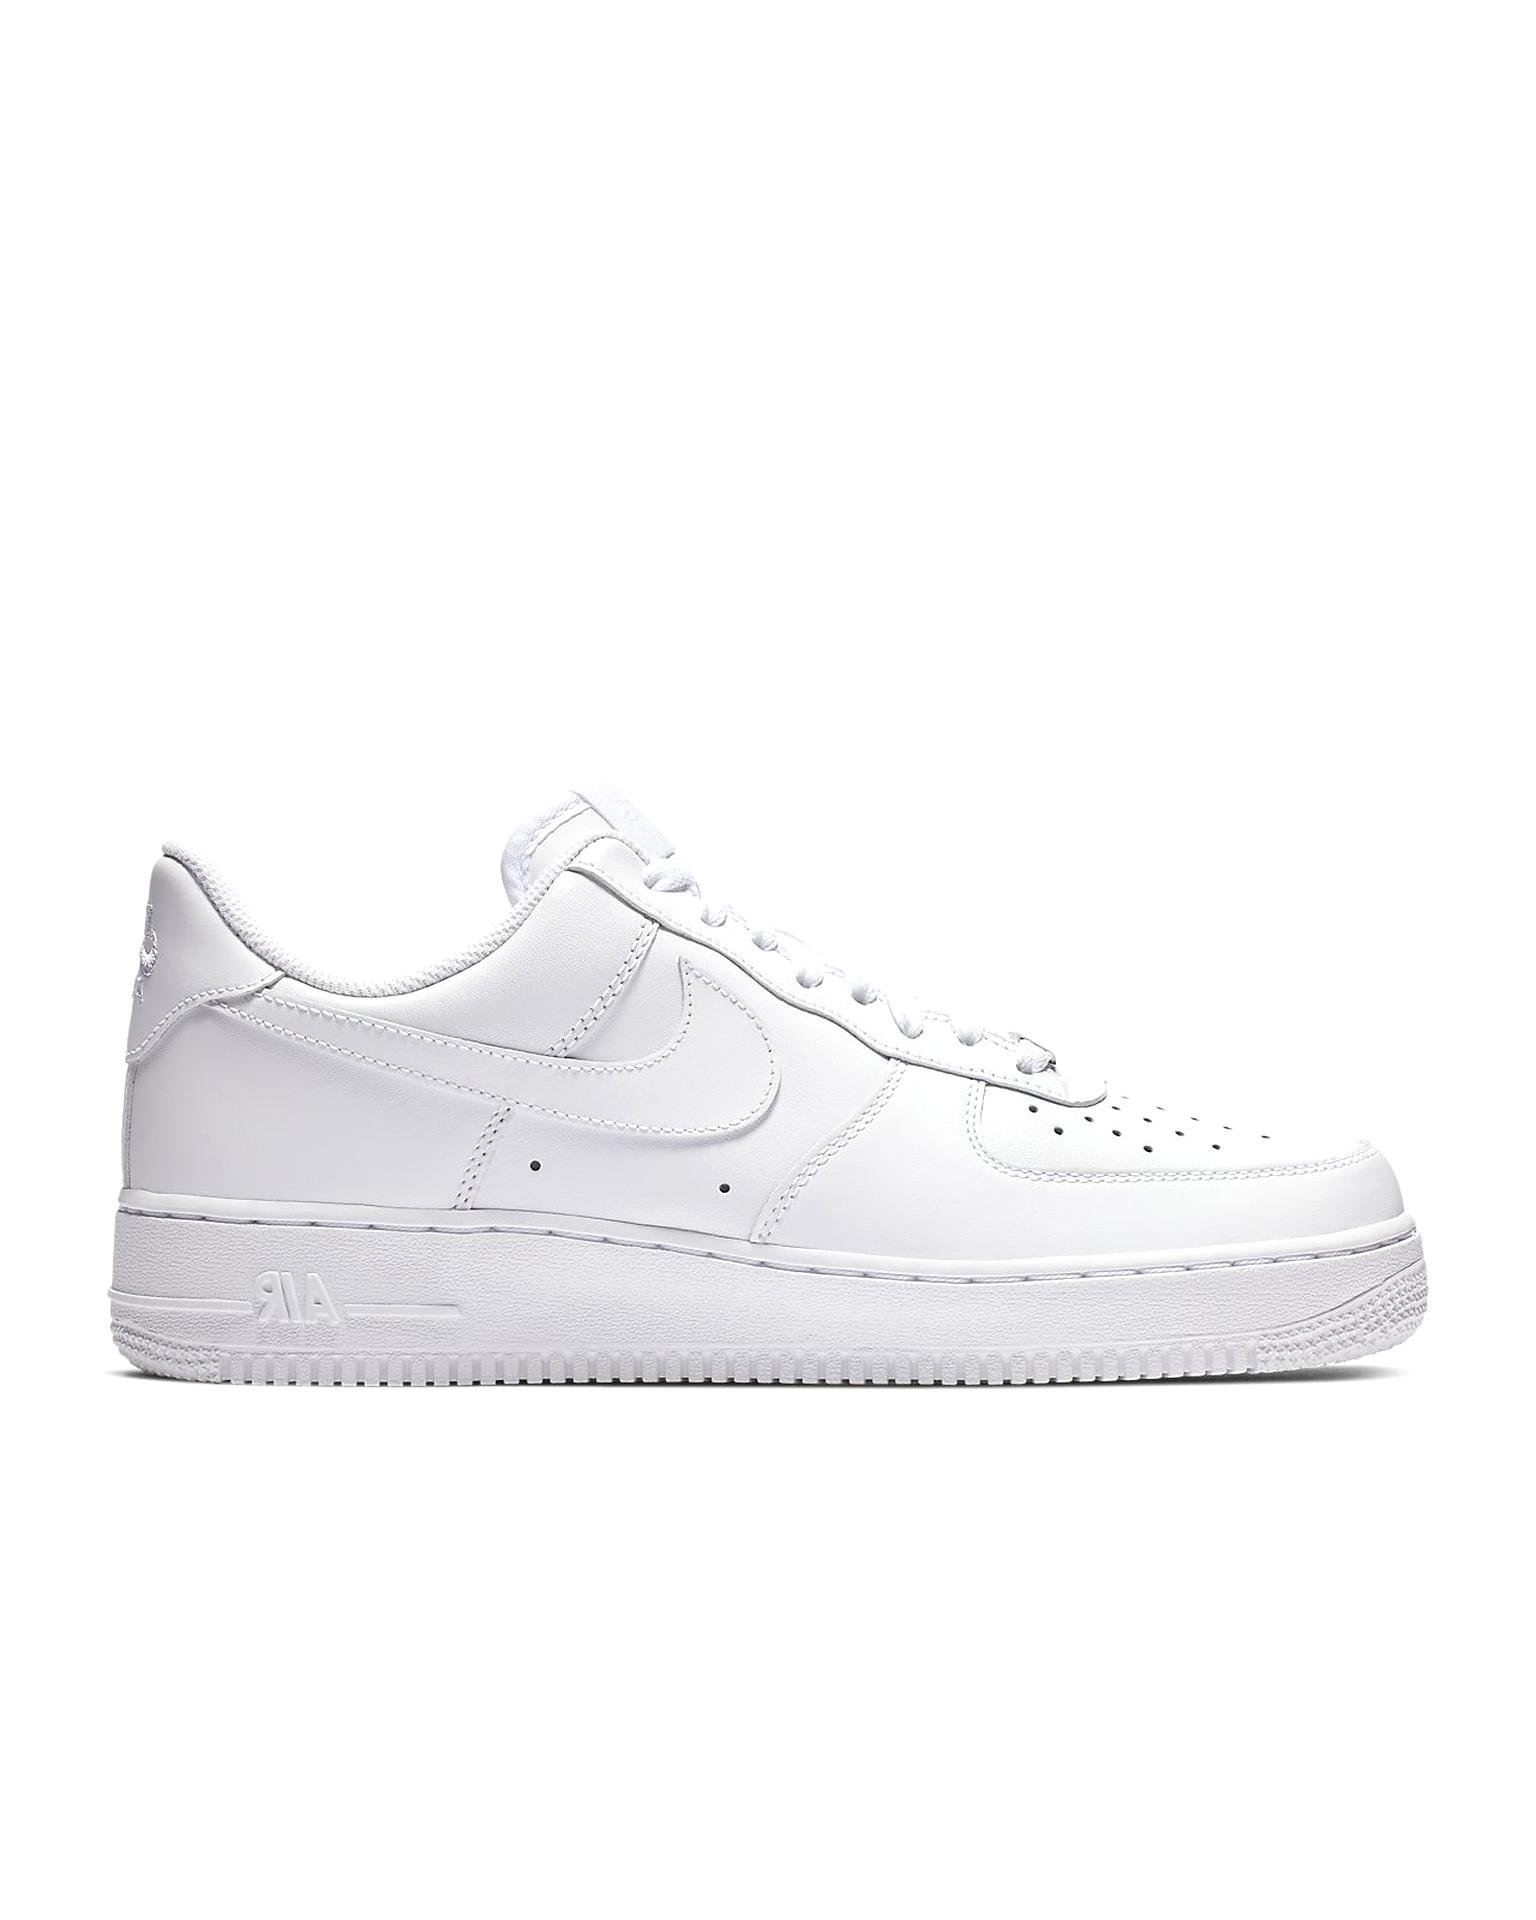 Nike Air Force 1 d'occasion | Plus que 4 à 75%